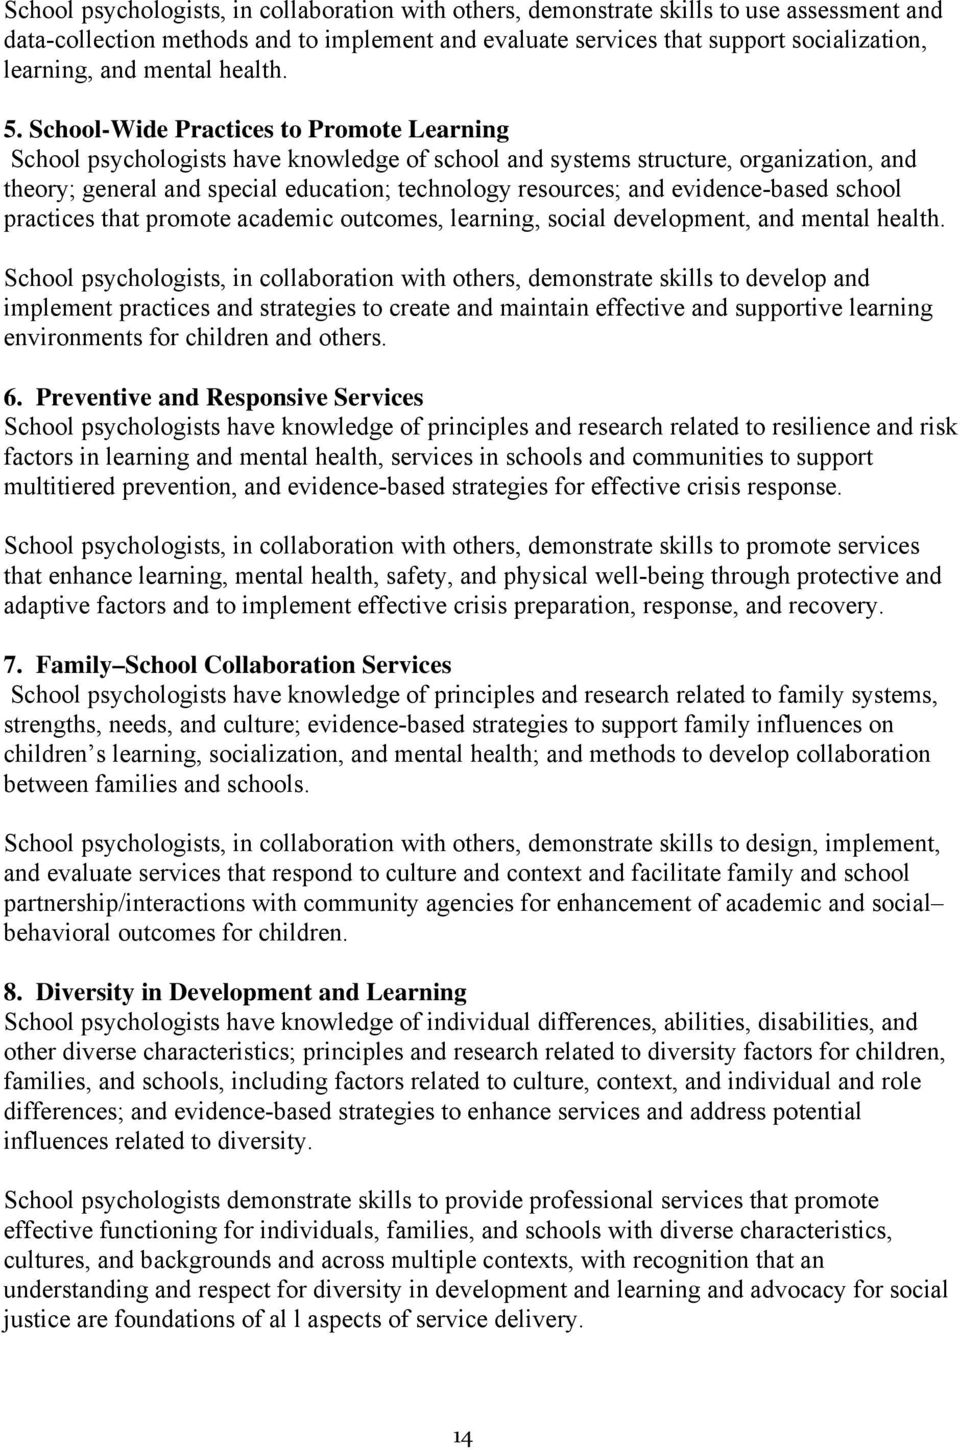 School-Wide Practices to Promote Learning School psychologists have knowledge of school and systems structure, organization, and theory; general and special education; technology resources; and